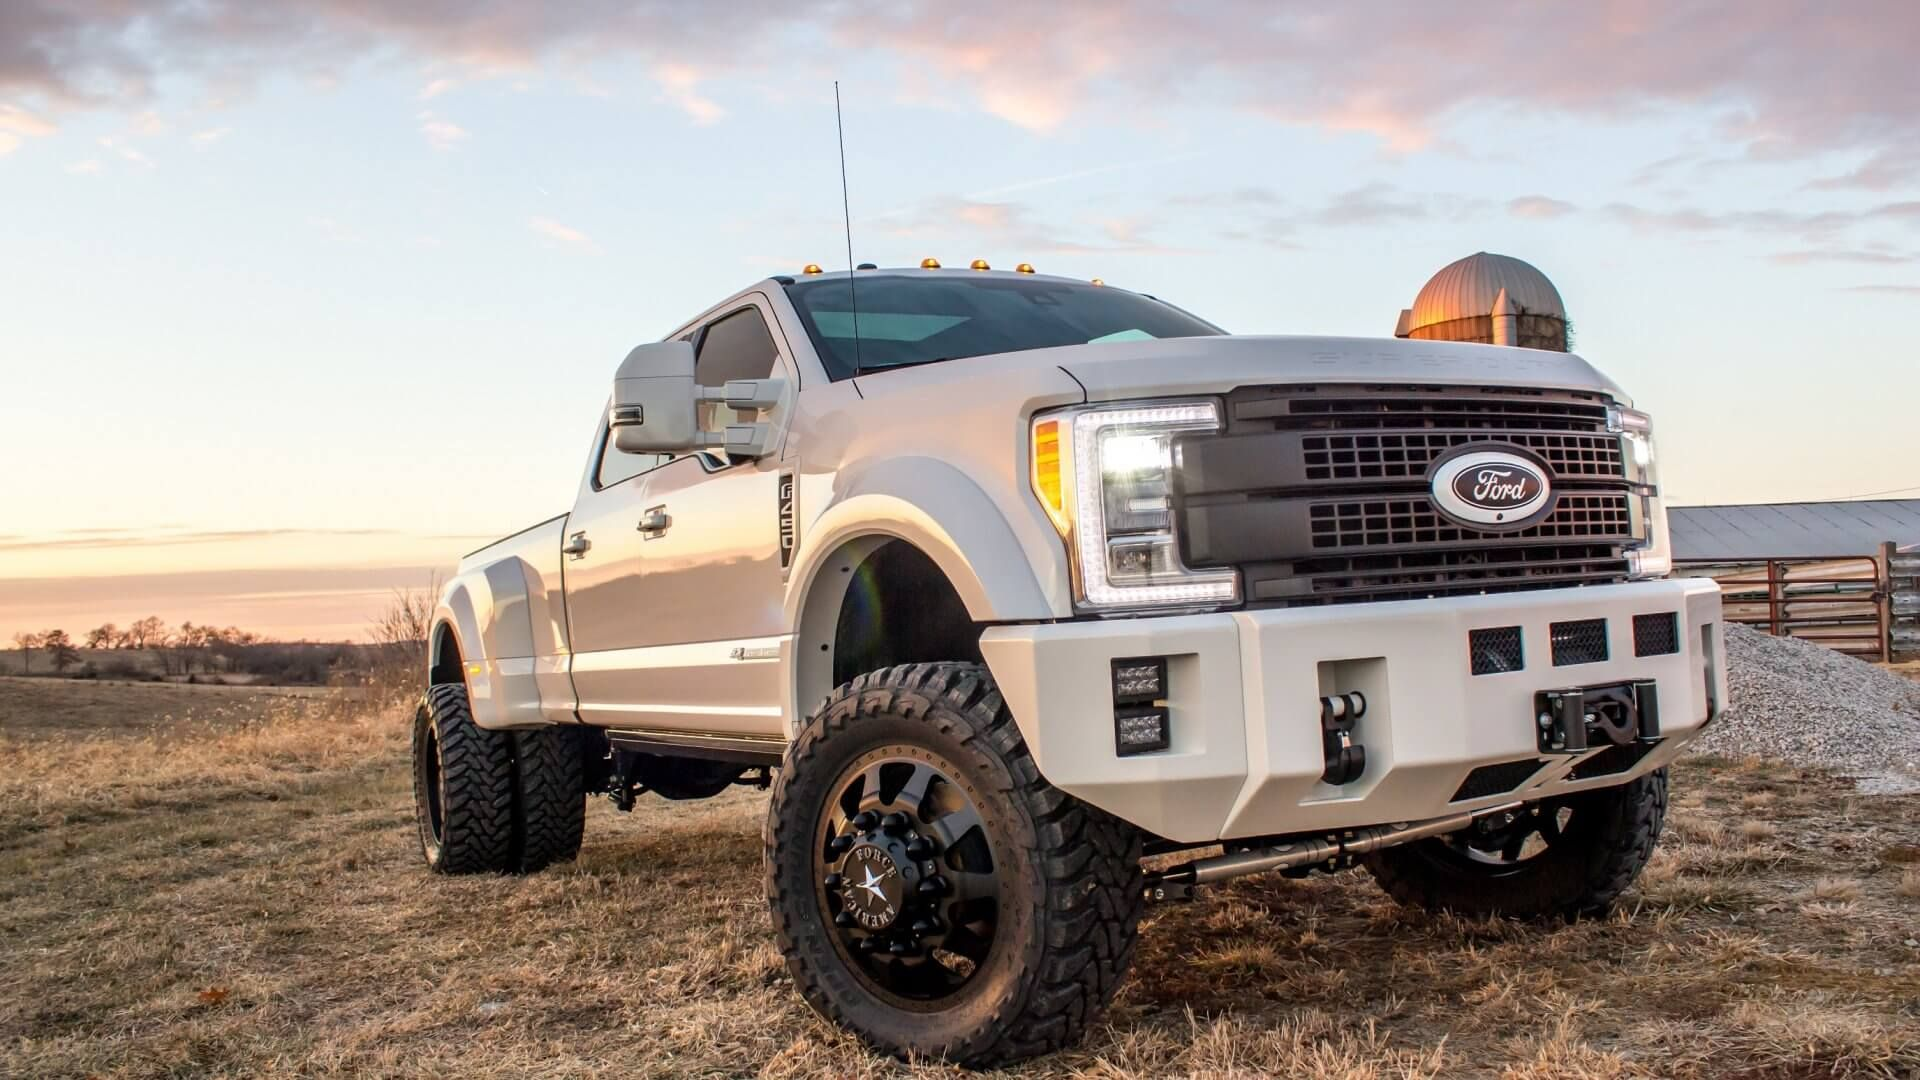 Pin by Cody Jo Olson on All Things Duallies! Lifted ford